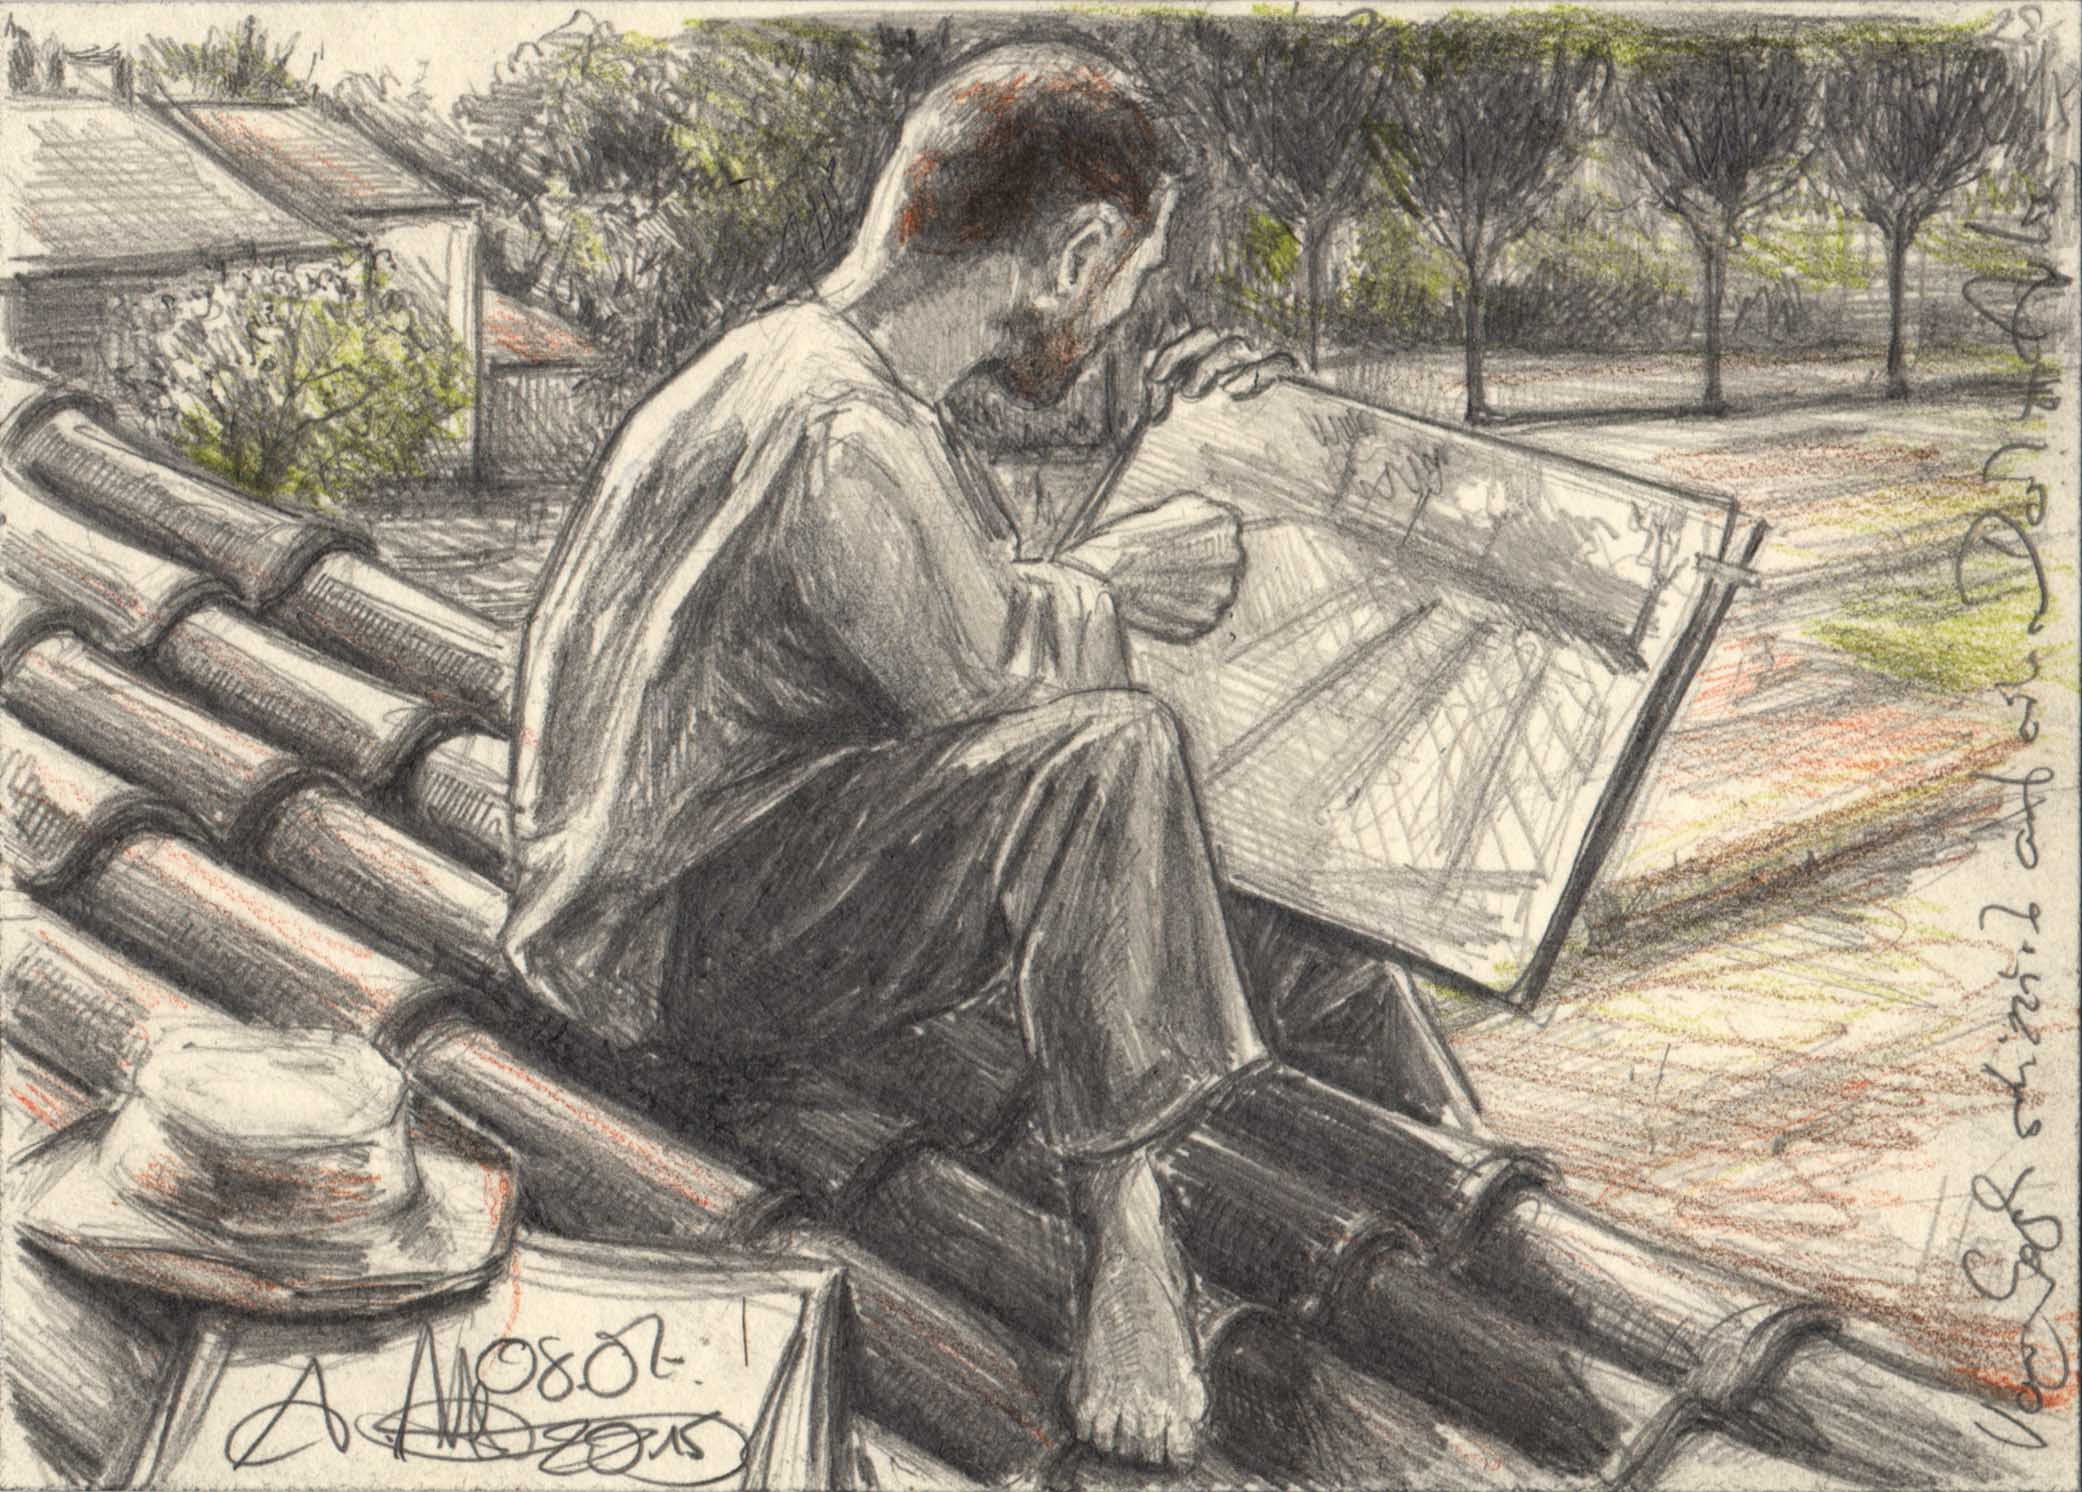 Van Gogh sketching on a roof in Arles